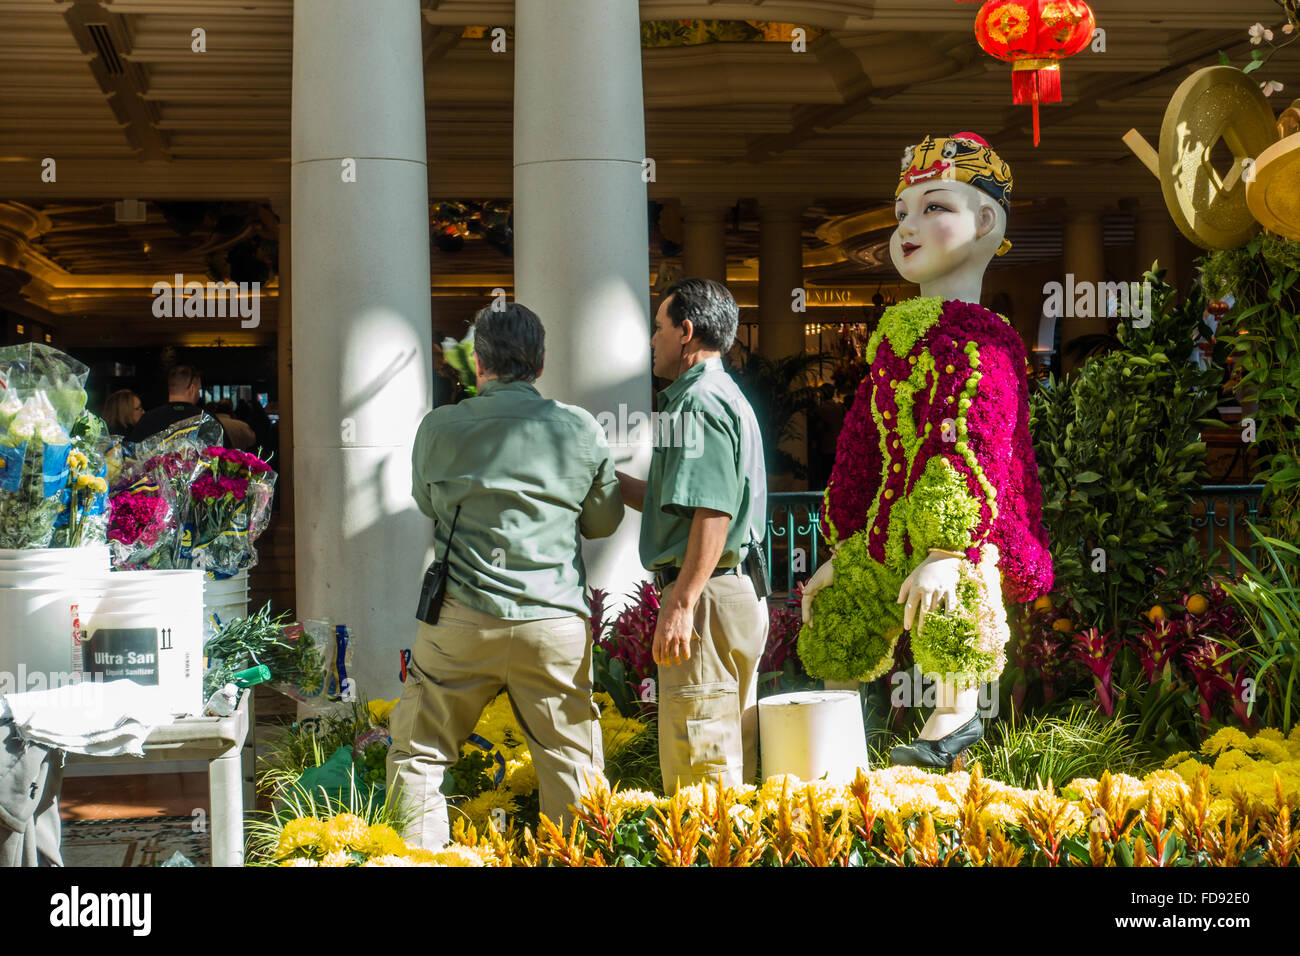 Charming Gardeners Maintaining The Flower Beds At The Gardens In The Bellagio Casino  And Resort In Las Vegas, Nevada, USA